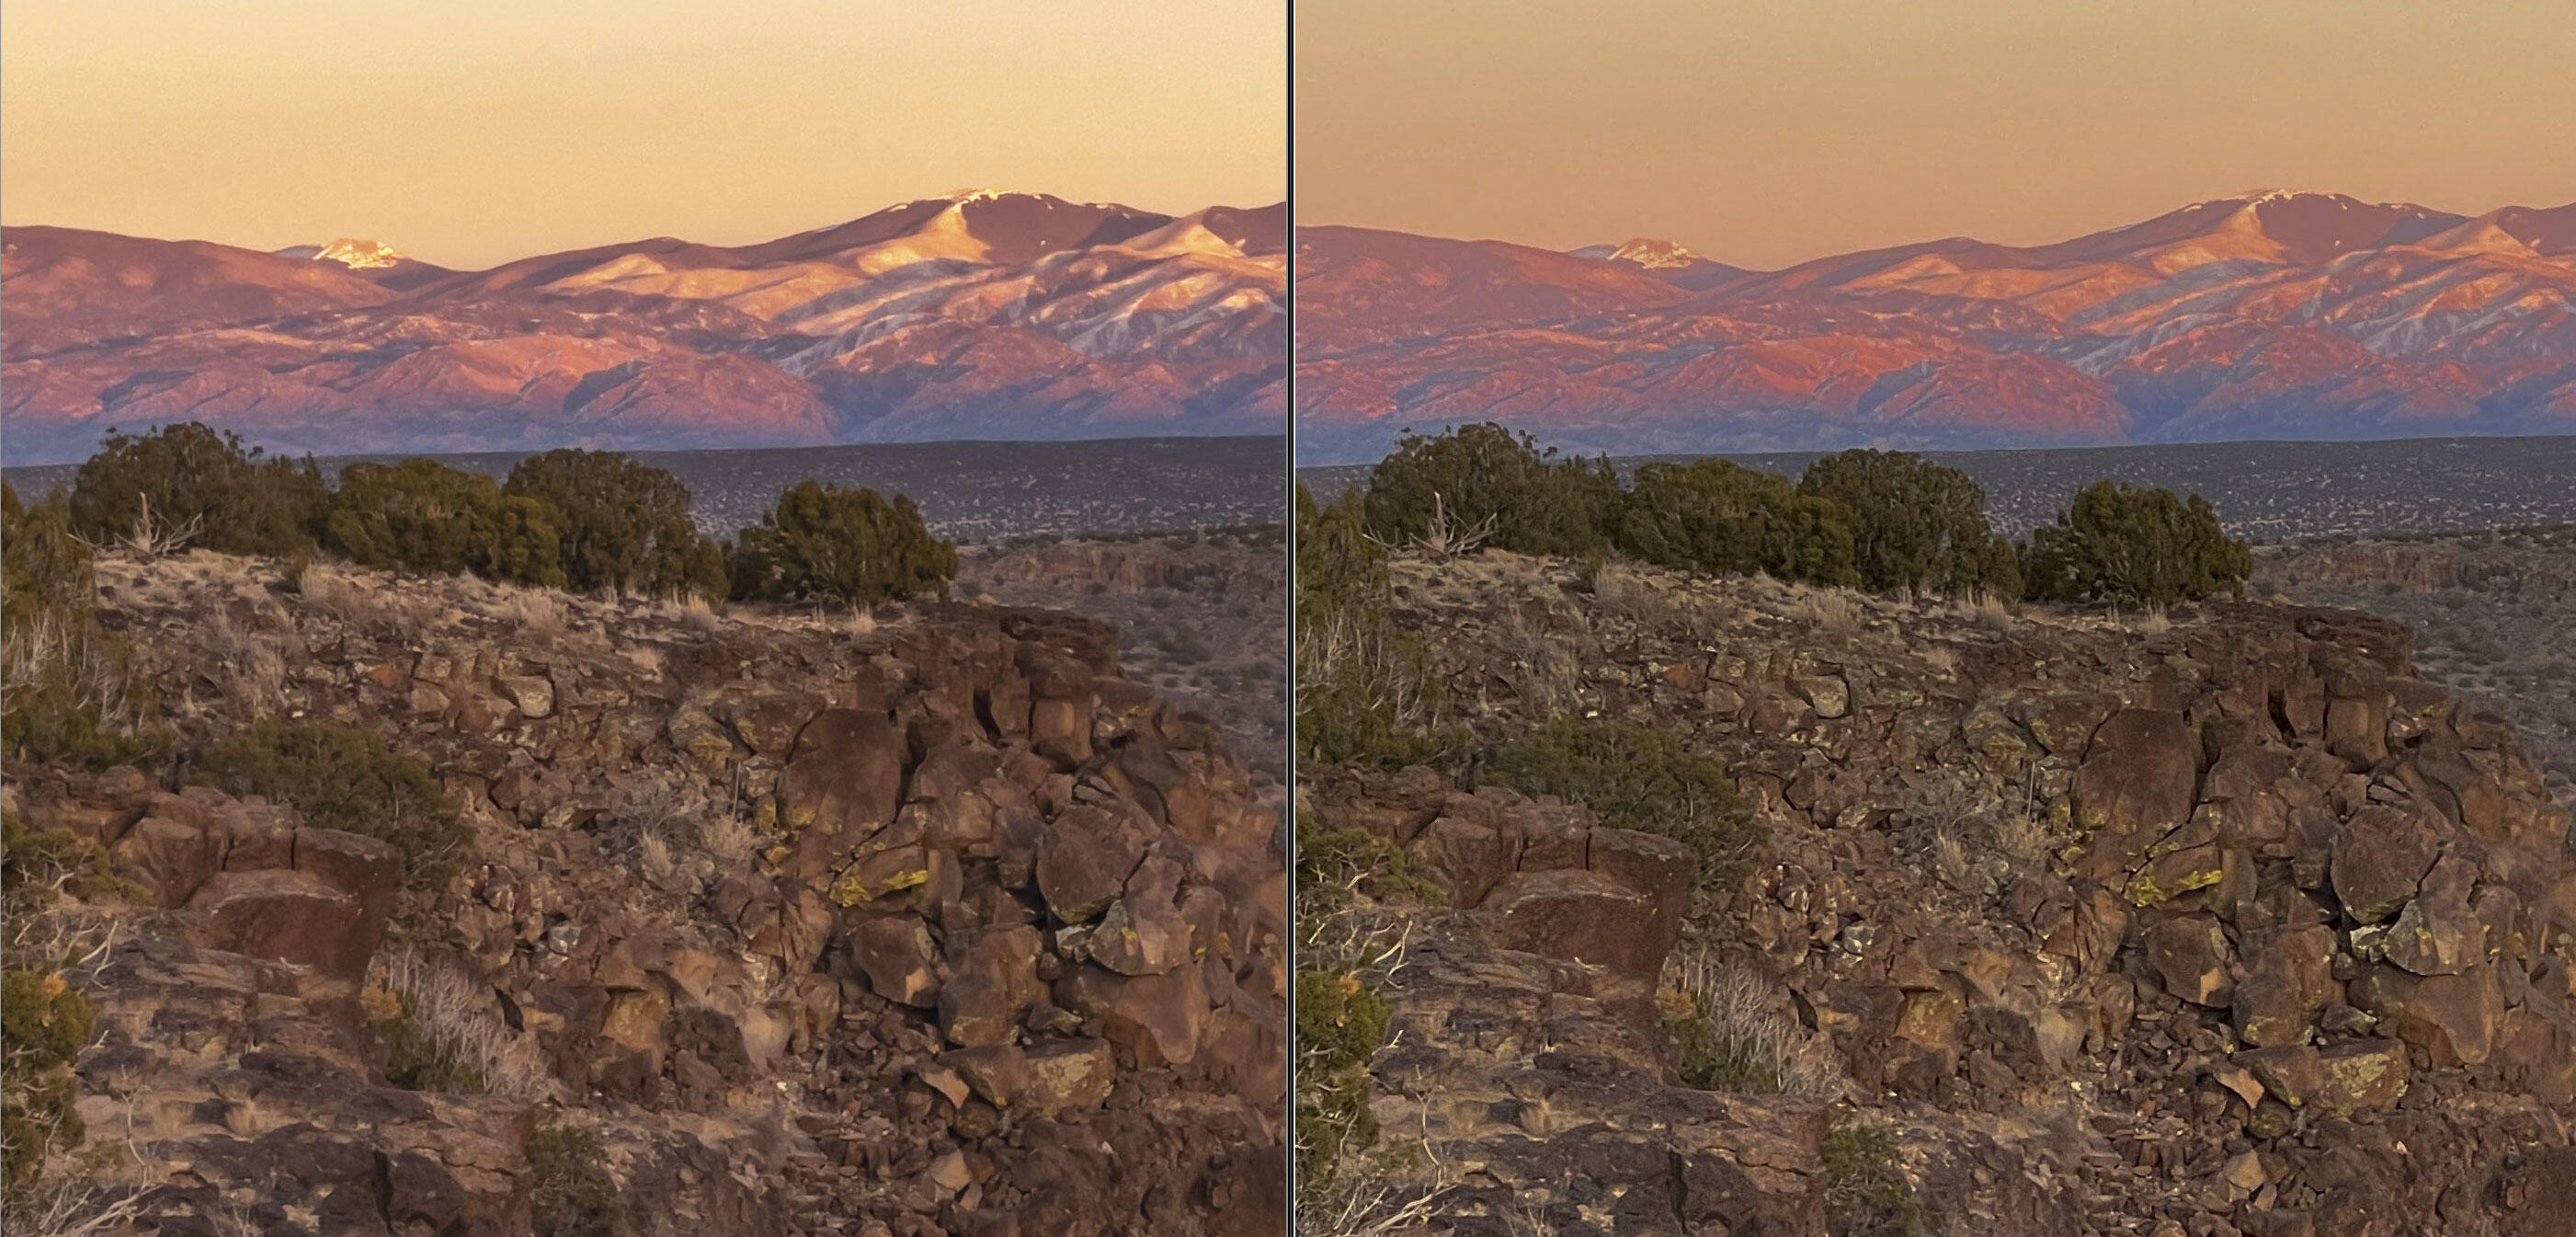 The ProRaw image to the left offers a natural view to the Sangre de Cristo Mountains at sunset, left. On the corresponding JPEG, the mountains look overprocessed and unrealistic.